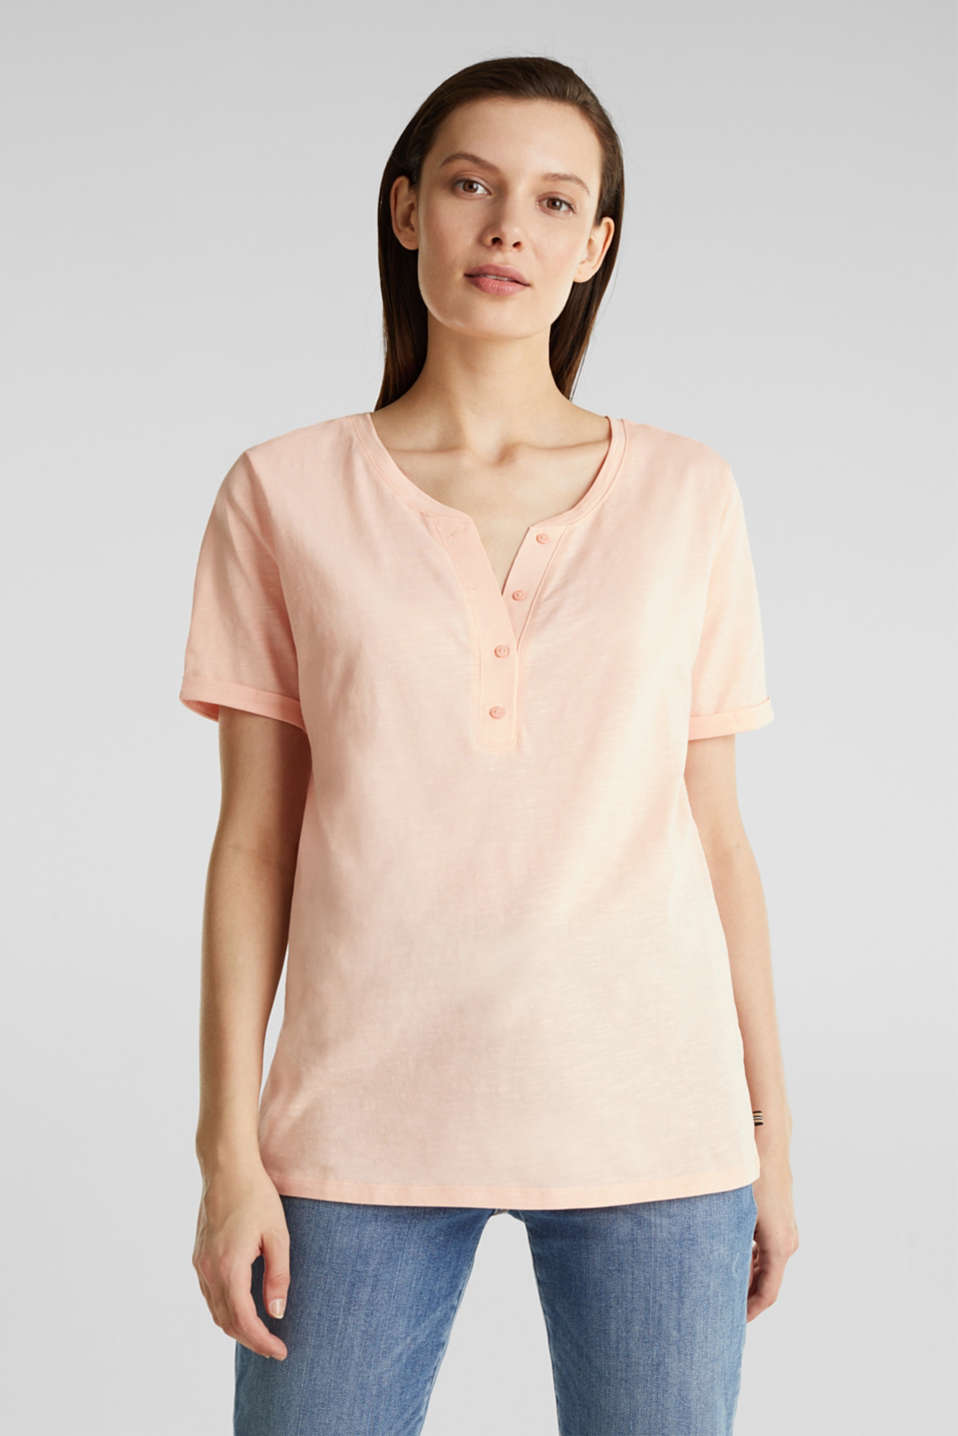 Esprit - 100% cotton Henley T-shirt